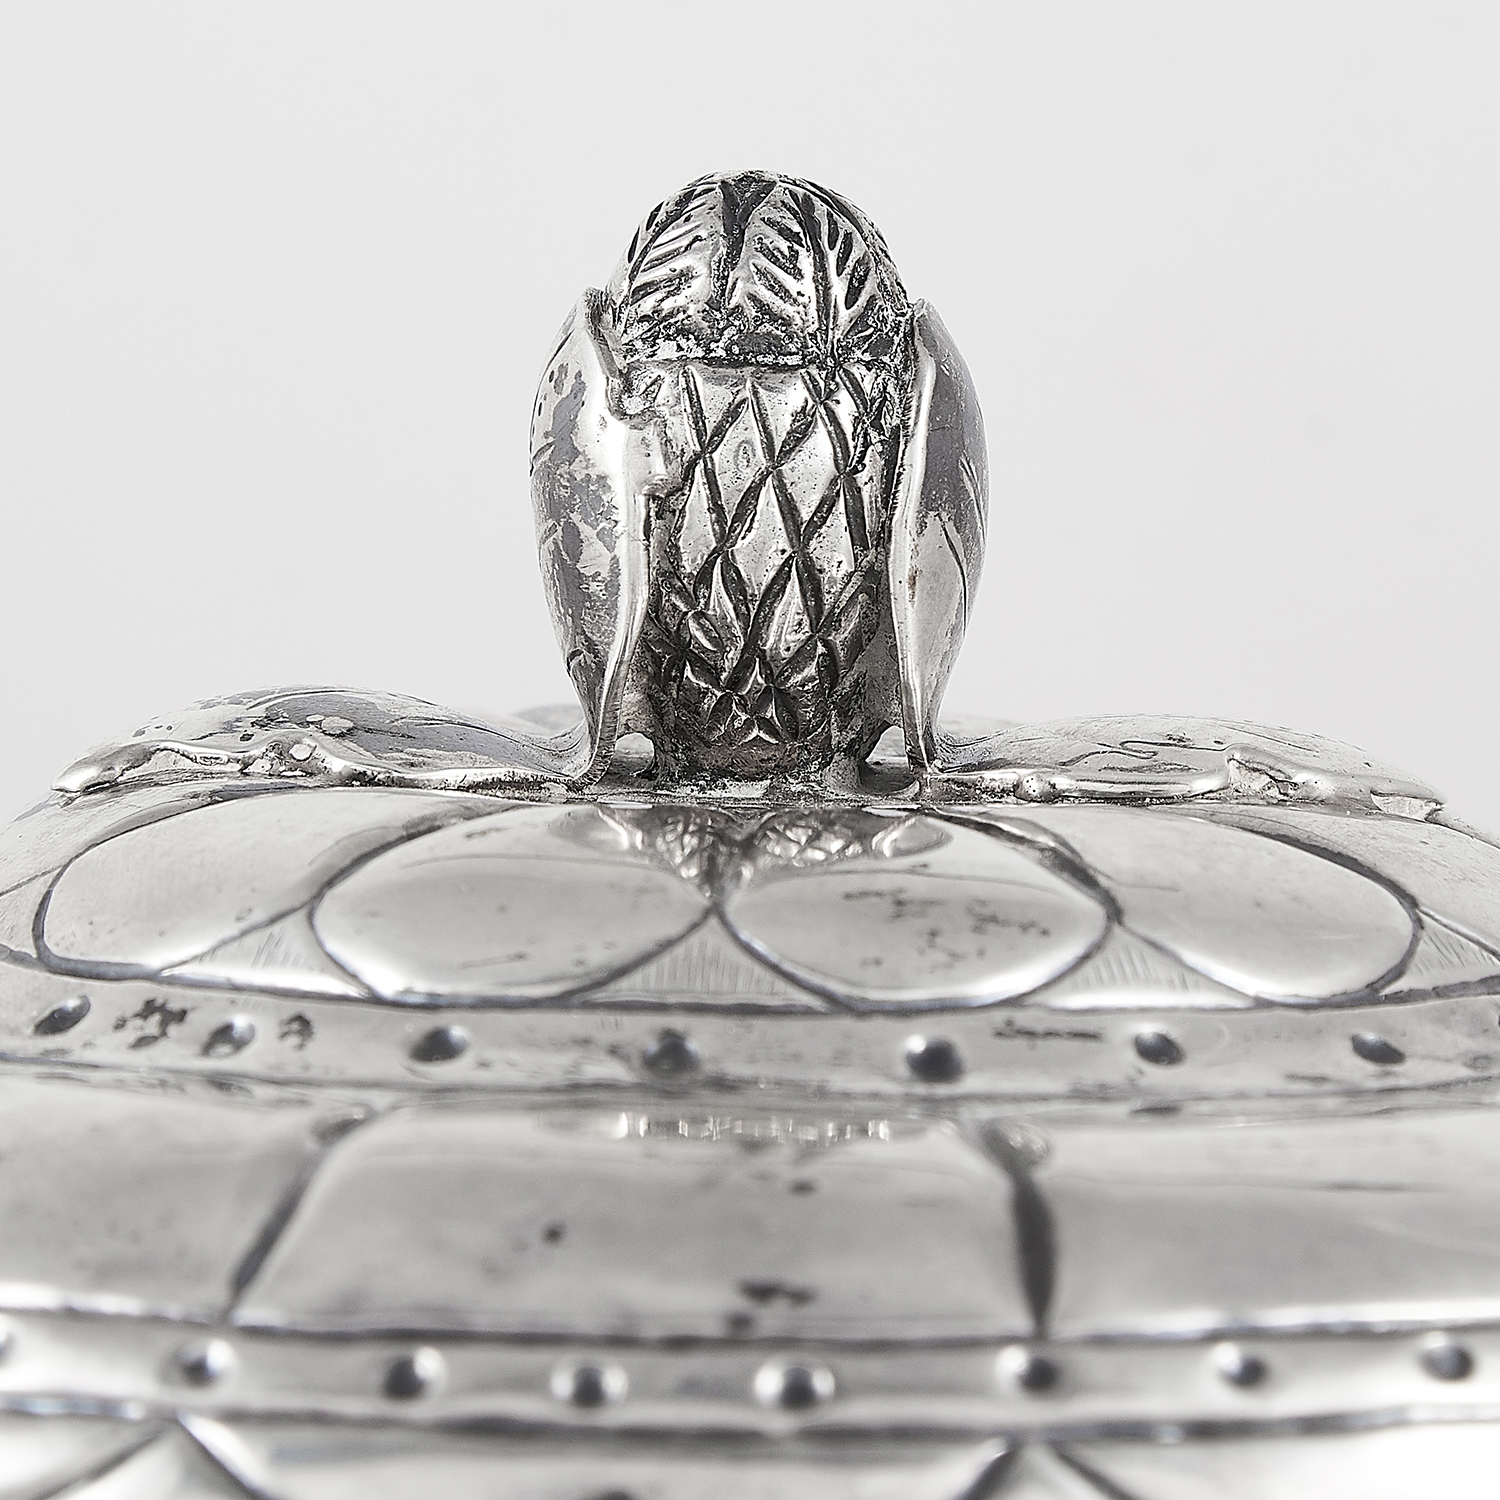 ANTIQUE MEXICAN SILVER POT AND COVER, 19TH CENTURY circular baluster form with chased decoration, - Image 2 of 2